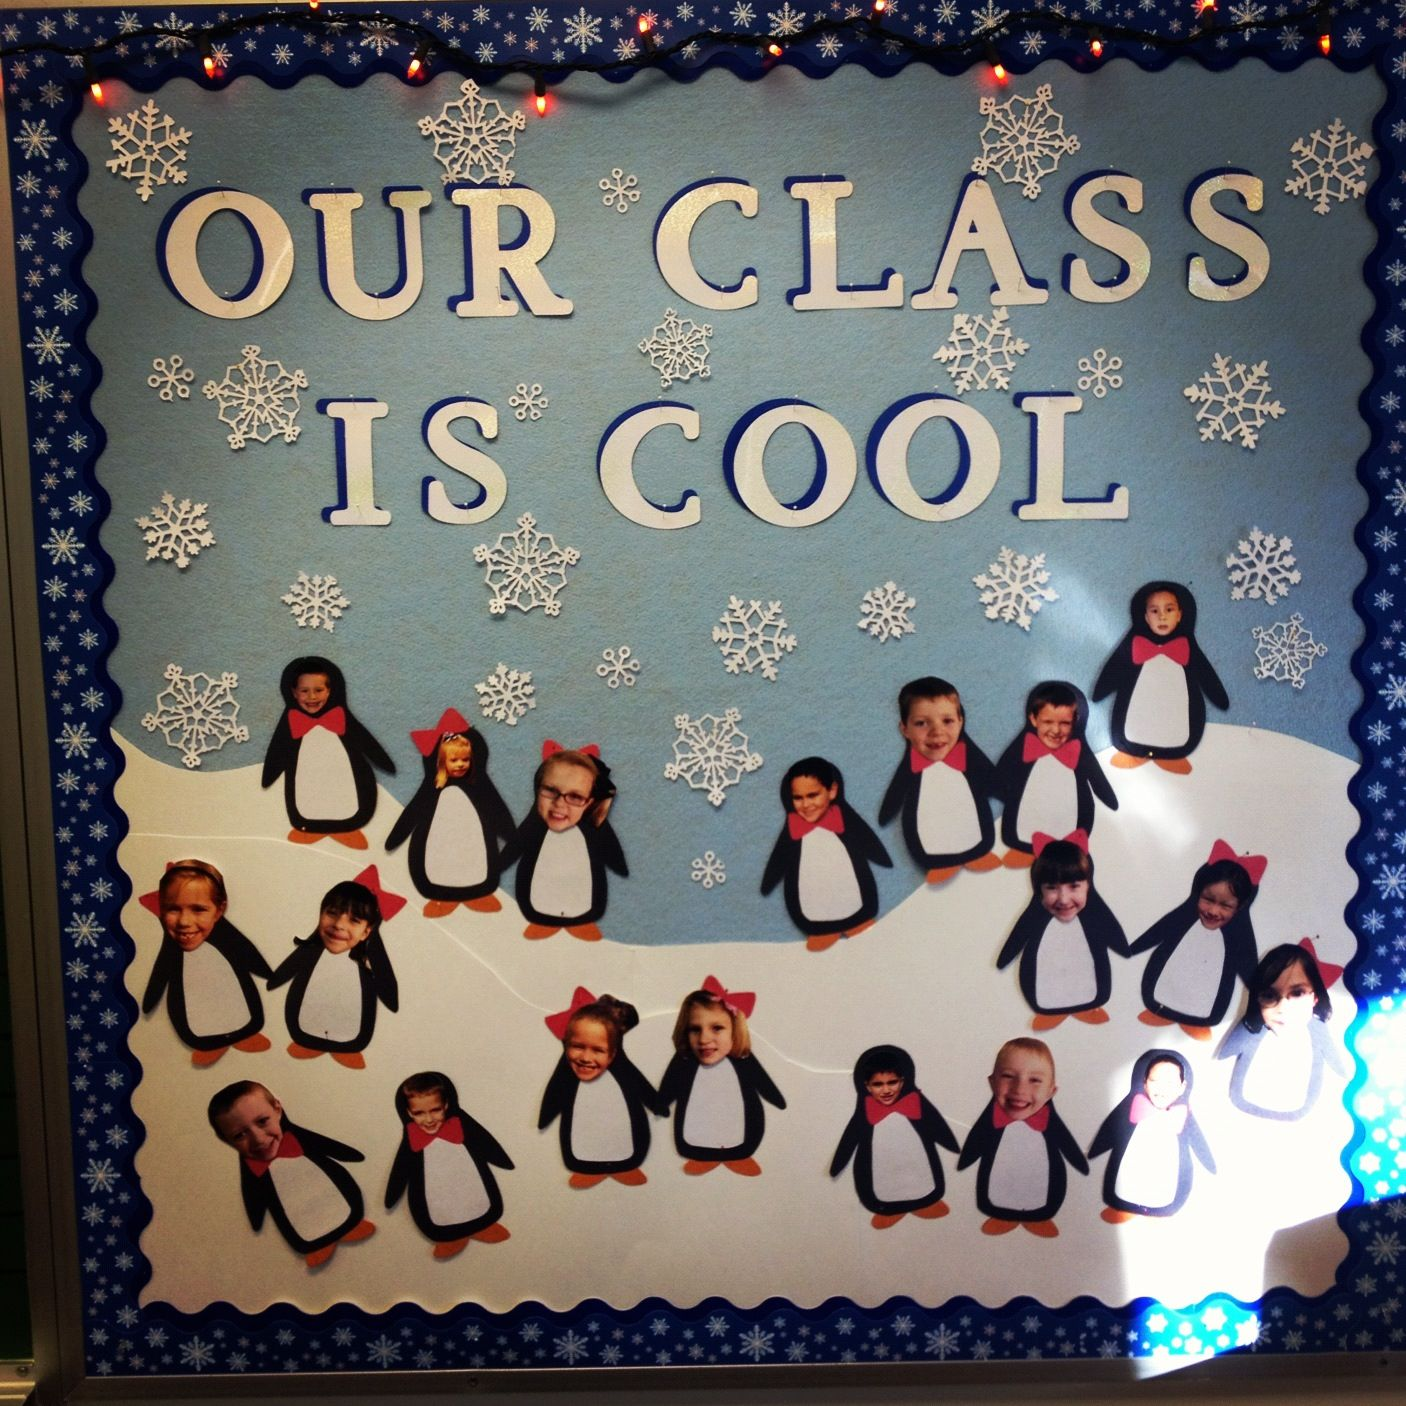 Winter bulletin boards ideas pinterest - Penguin Bulletin Board Our Homeschool Is Cool With Photo Laminated Larger Penguins